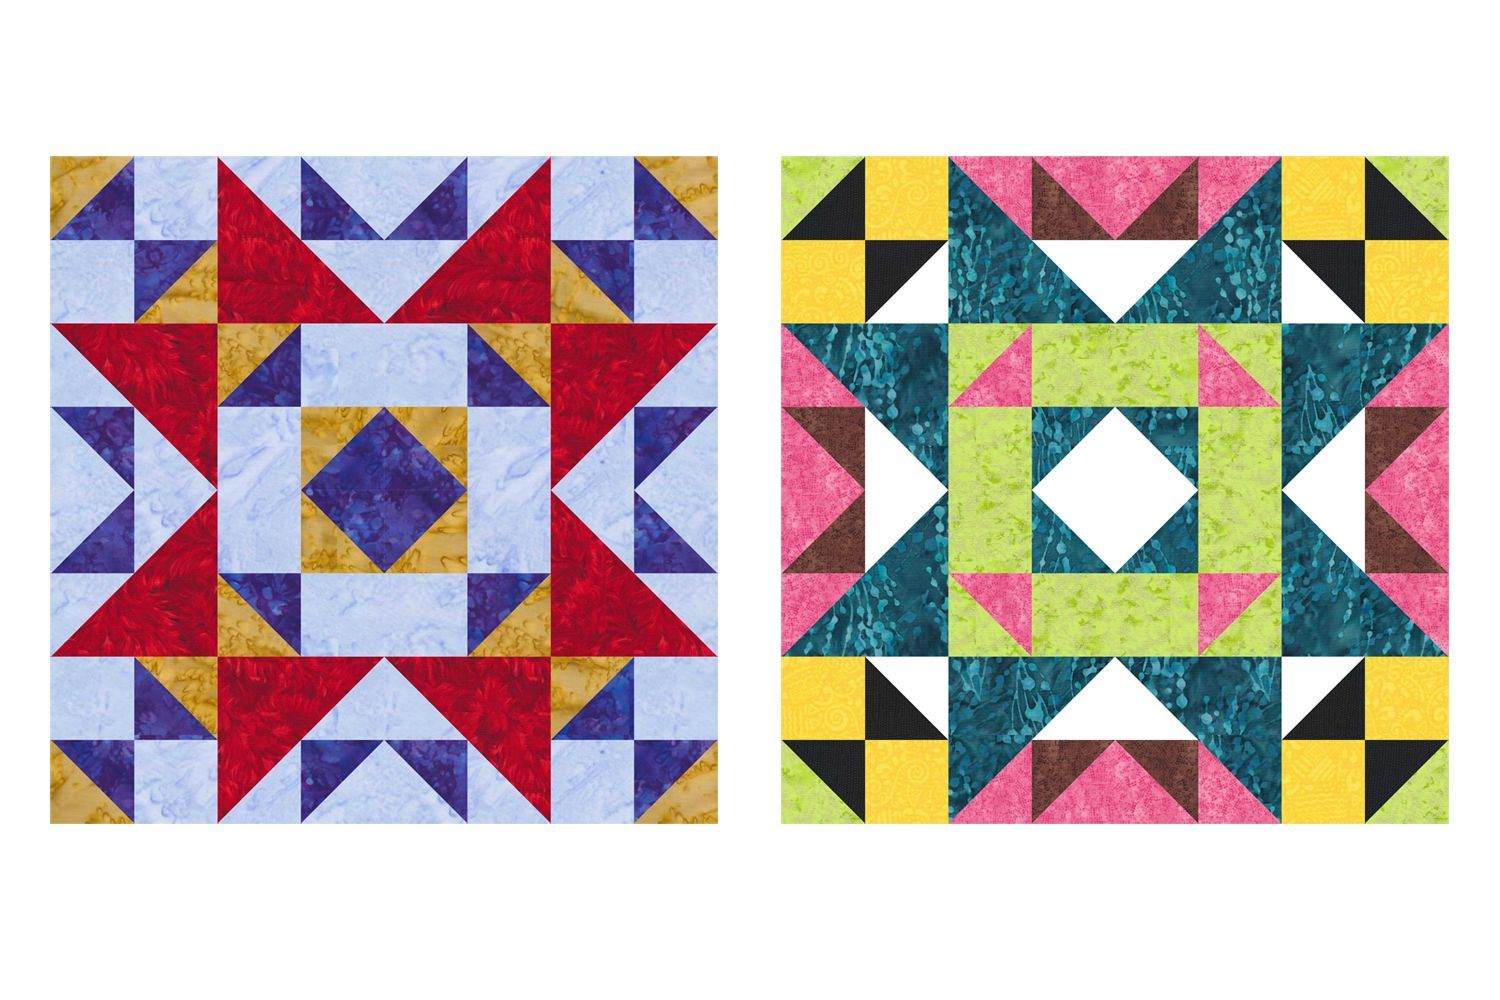 Sew An Intricate Version Of The Old Maid S Puzzle Quilt